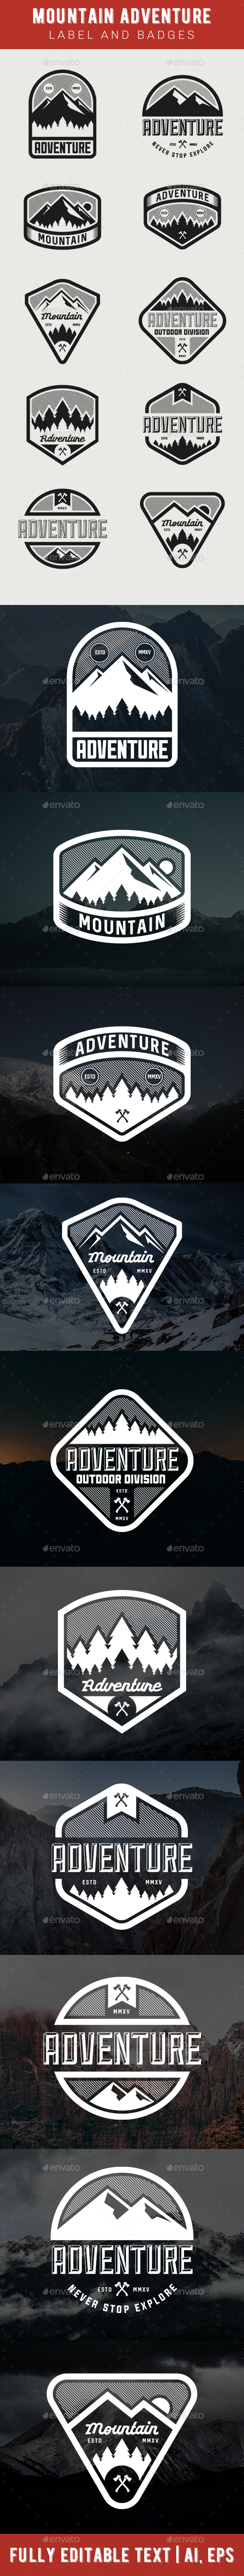 Mountain Adventure Label and Badges - Badges & Stickers Web Elements